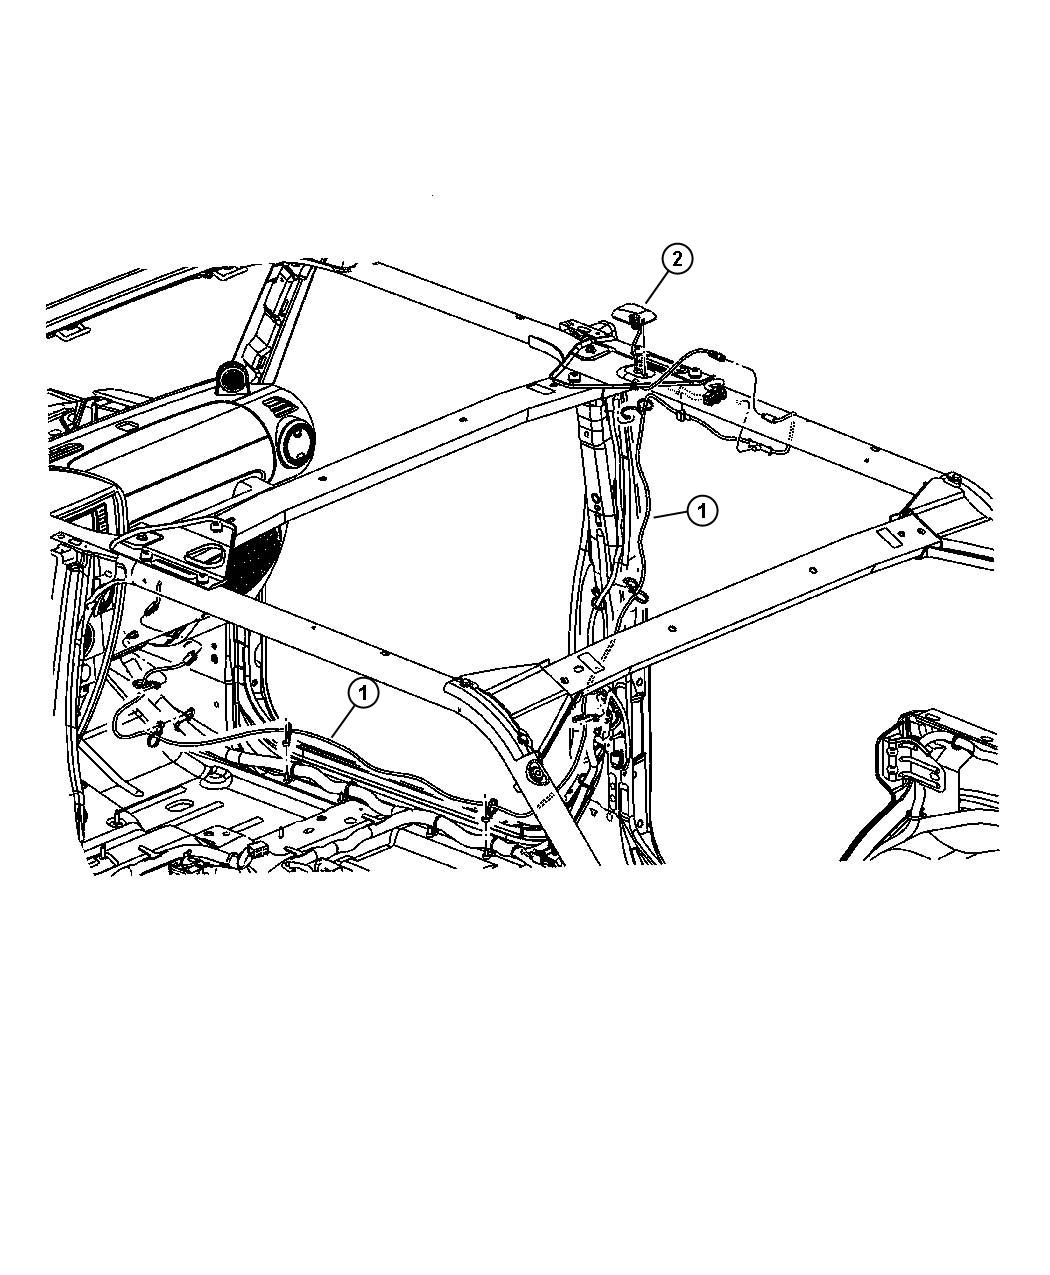 Jeep Wrangler Antenna Satellite After 11 25 06 Up To 11 25 06